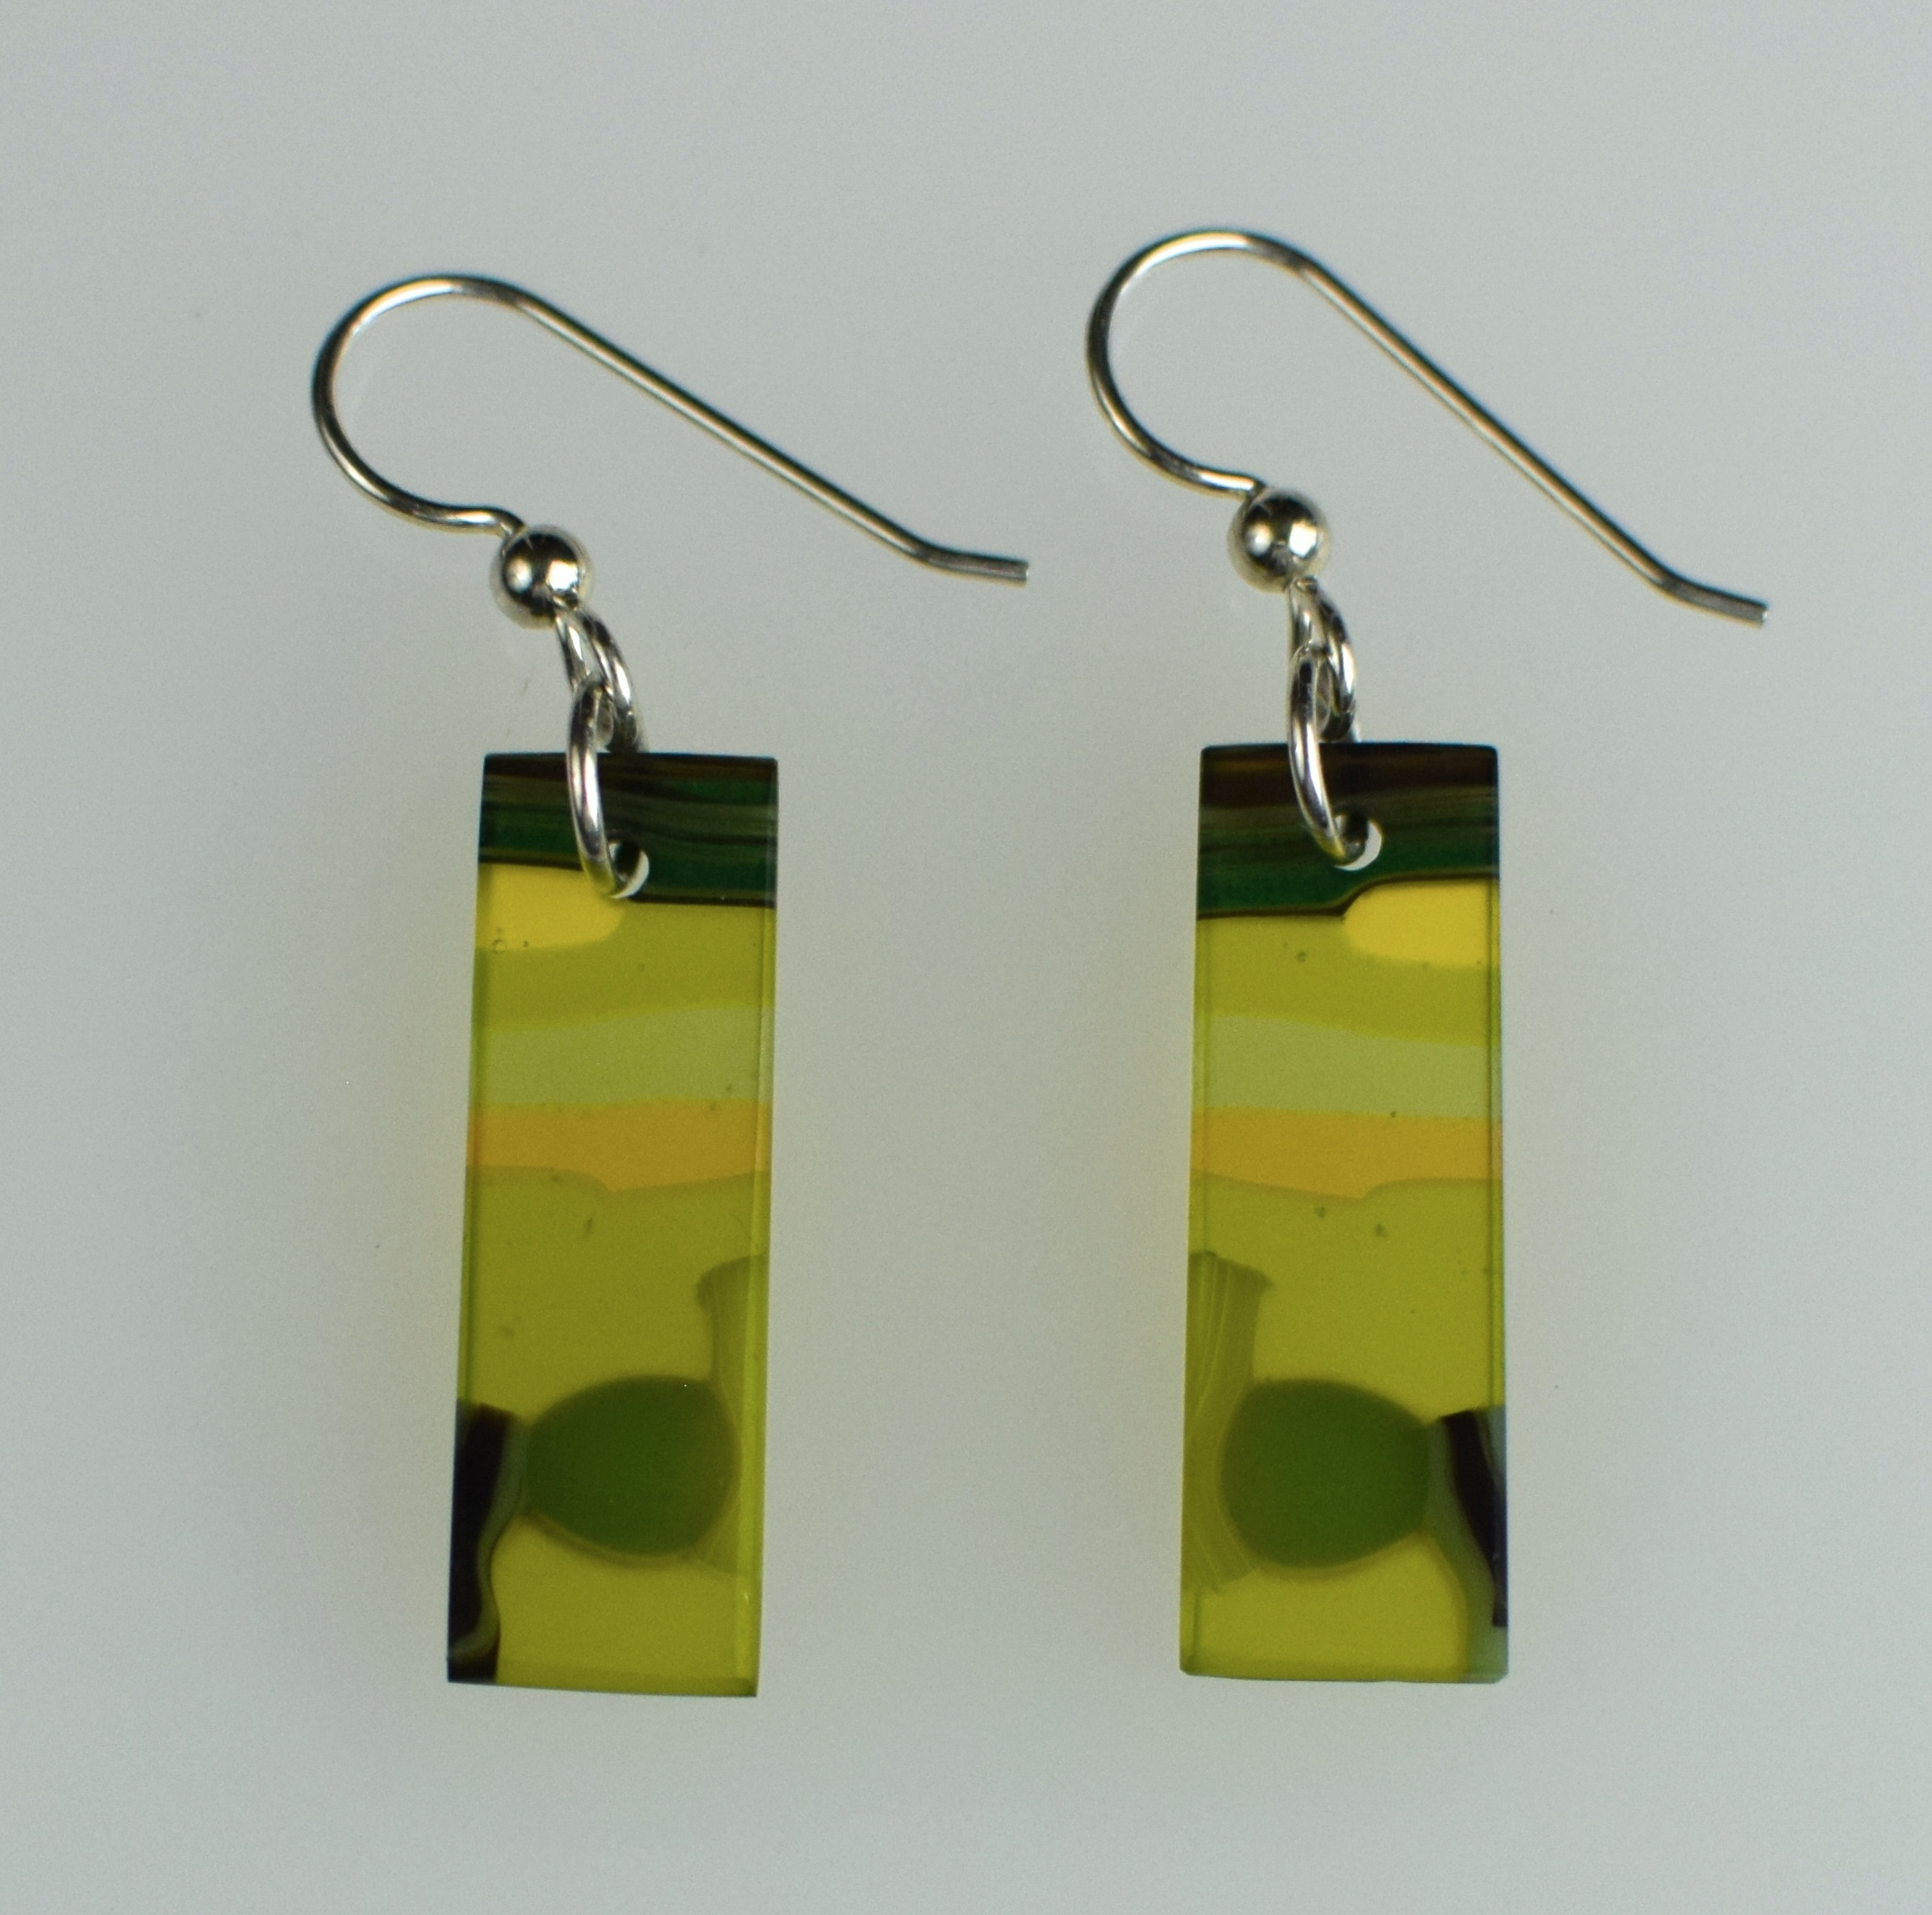 Earrings -0058-2 olive green